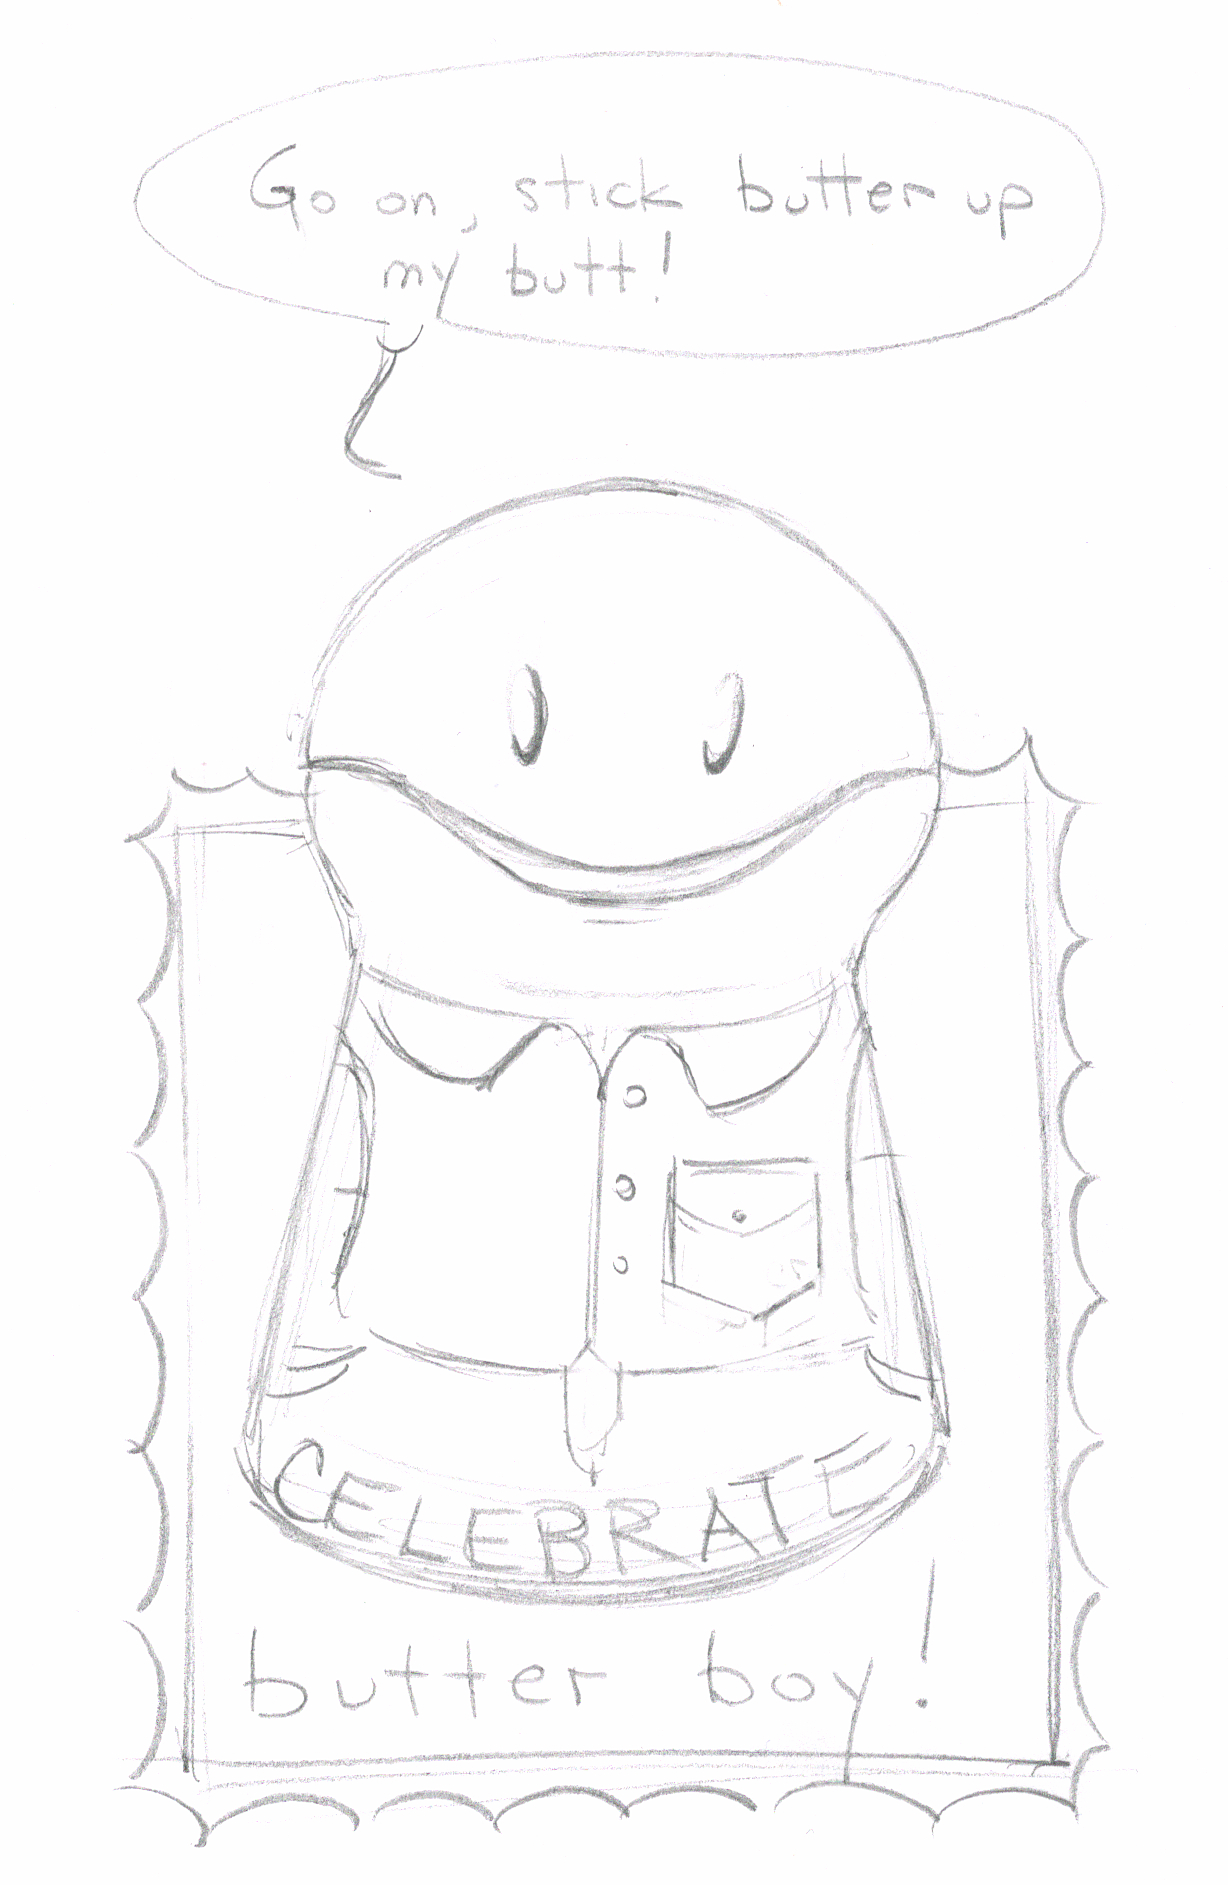 Remember The Post I Wrote About Butter Boy He Is An Excellent Low Rent